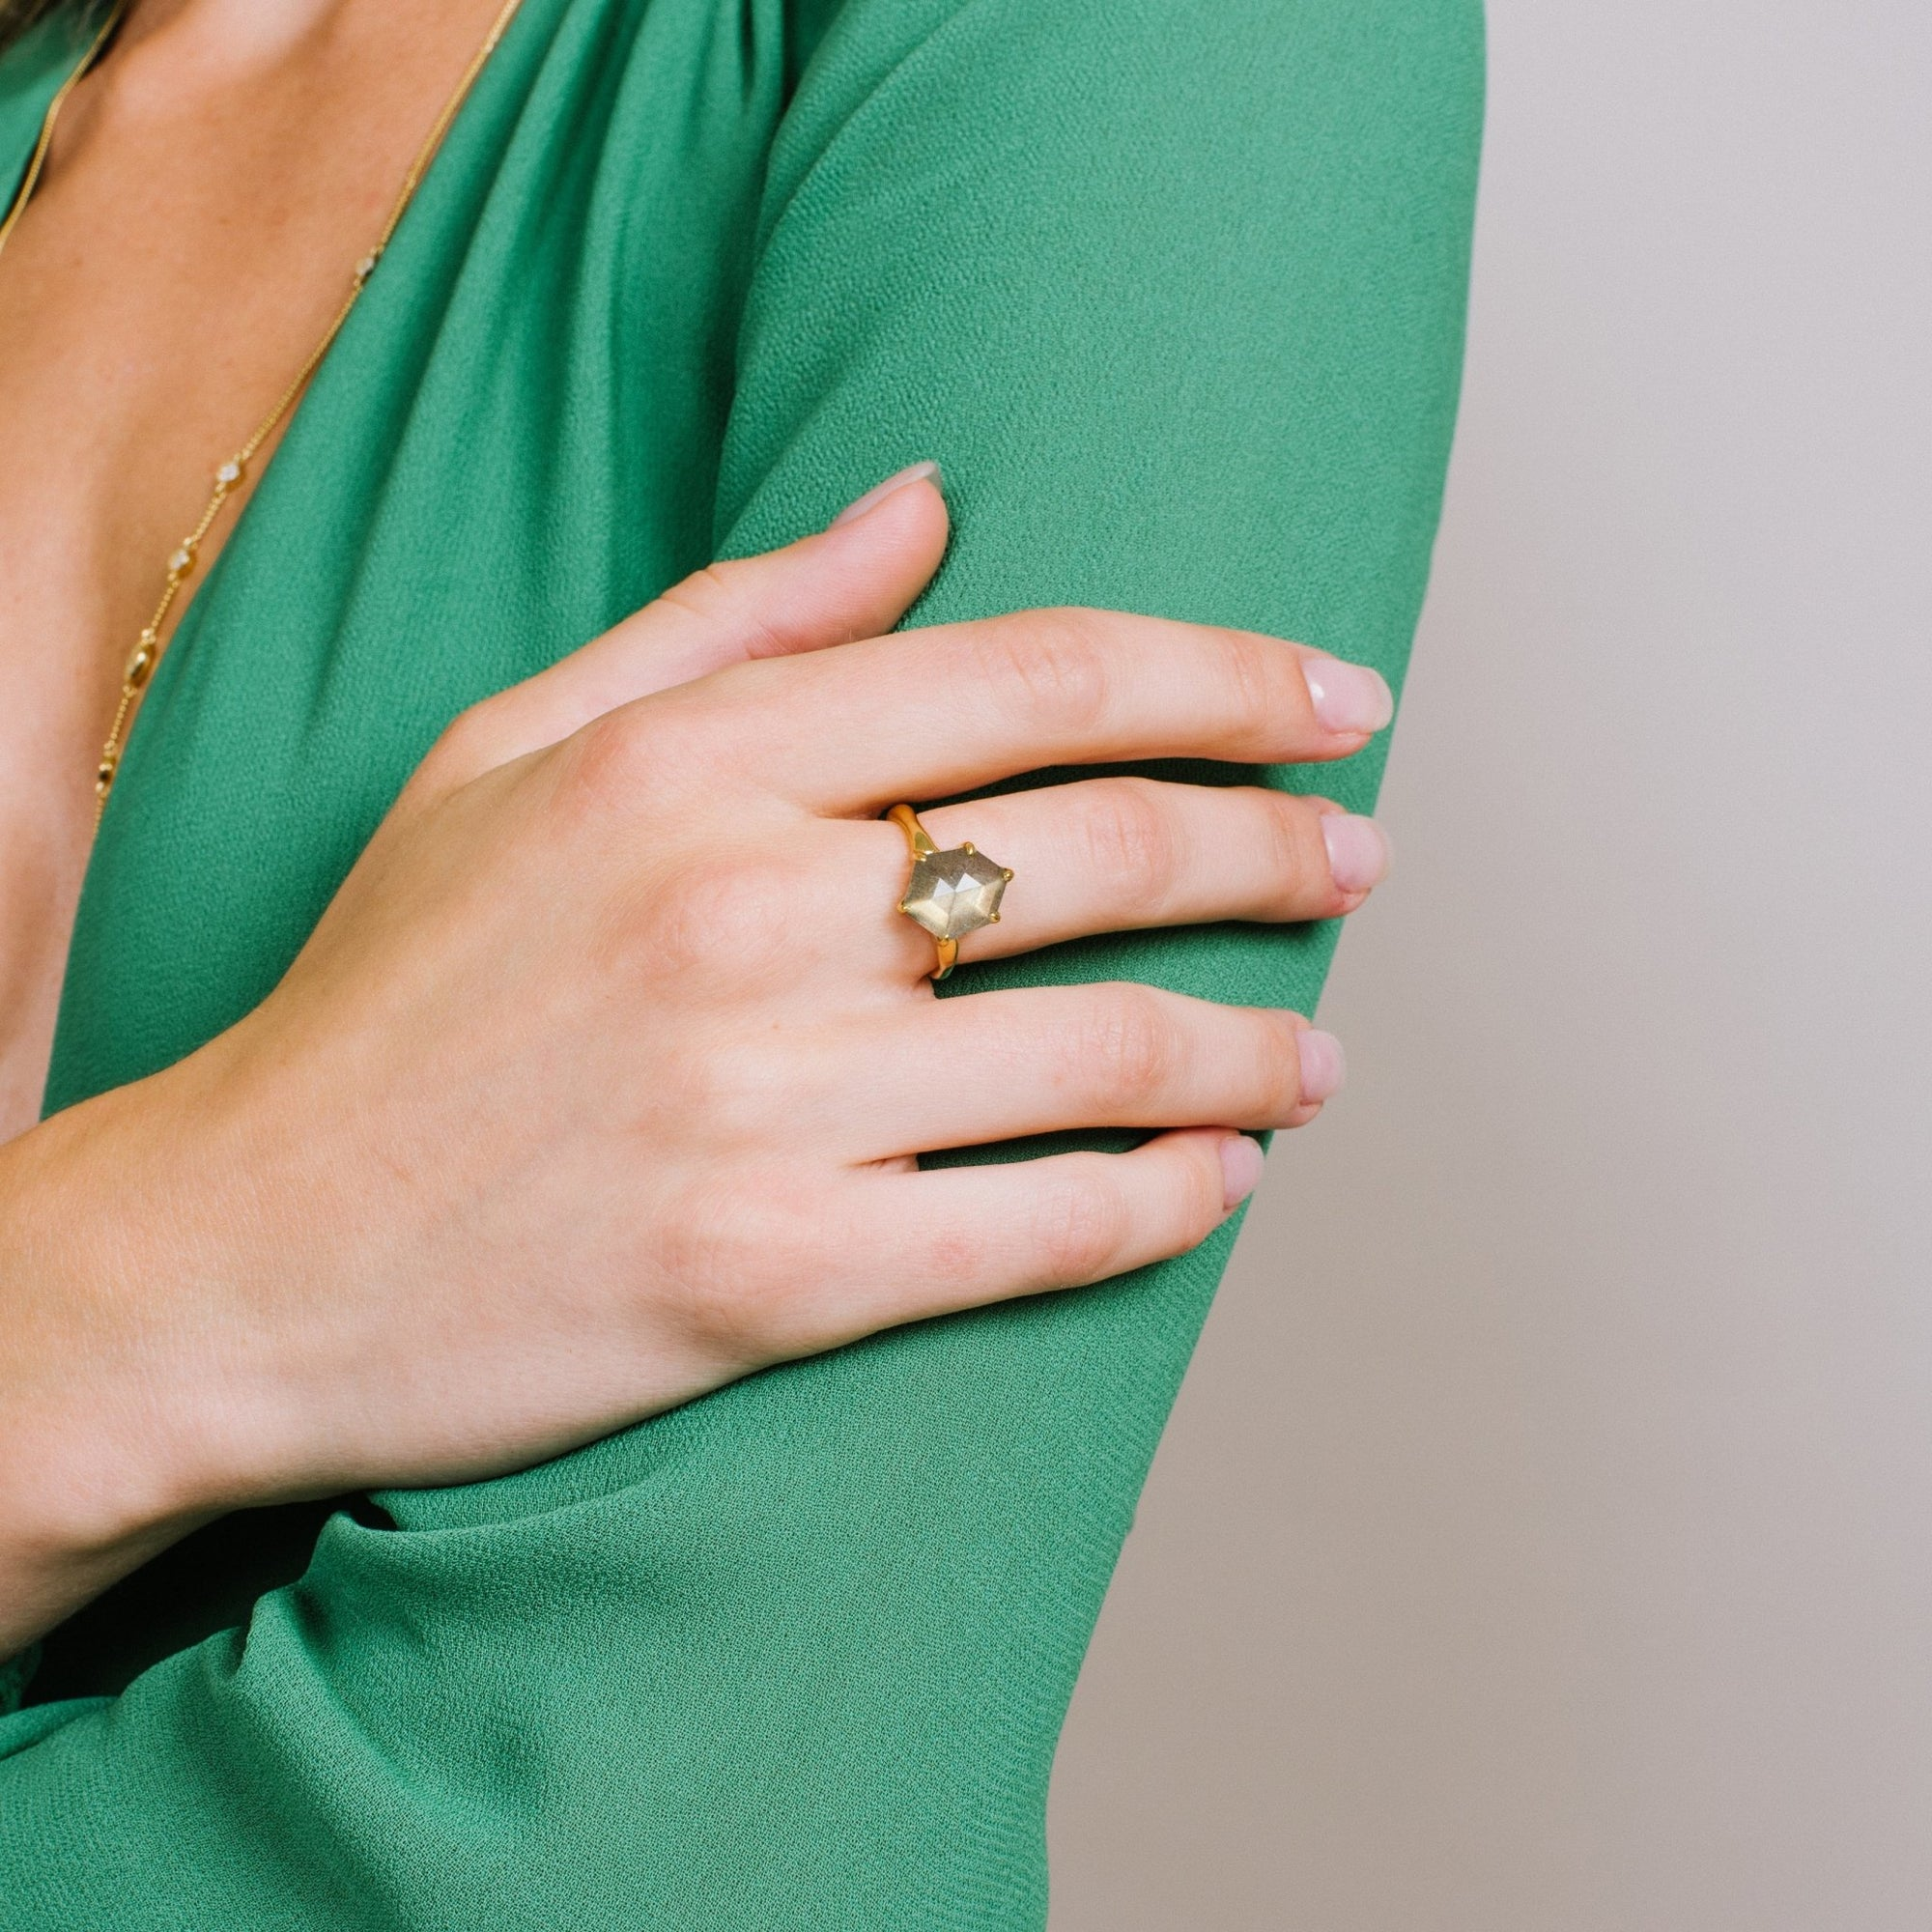 HONOUR SHIELD RING - LABRADORITE & GOLD - SO PRETTY CARA COTTER